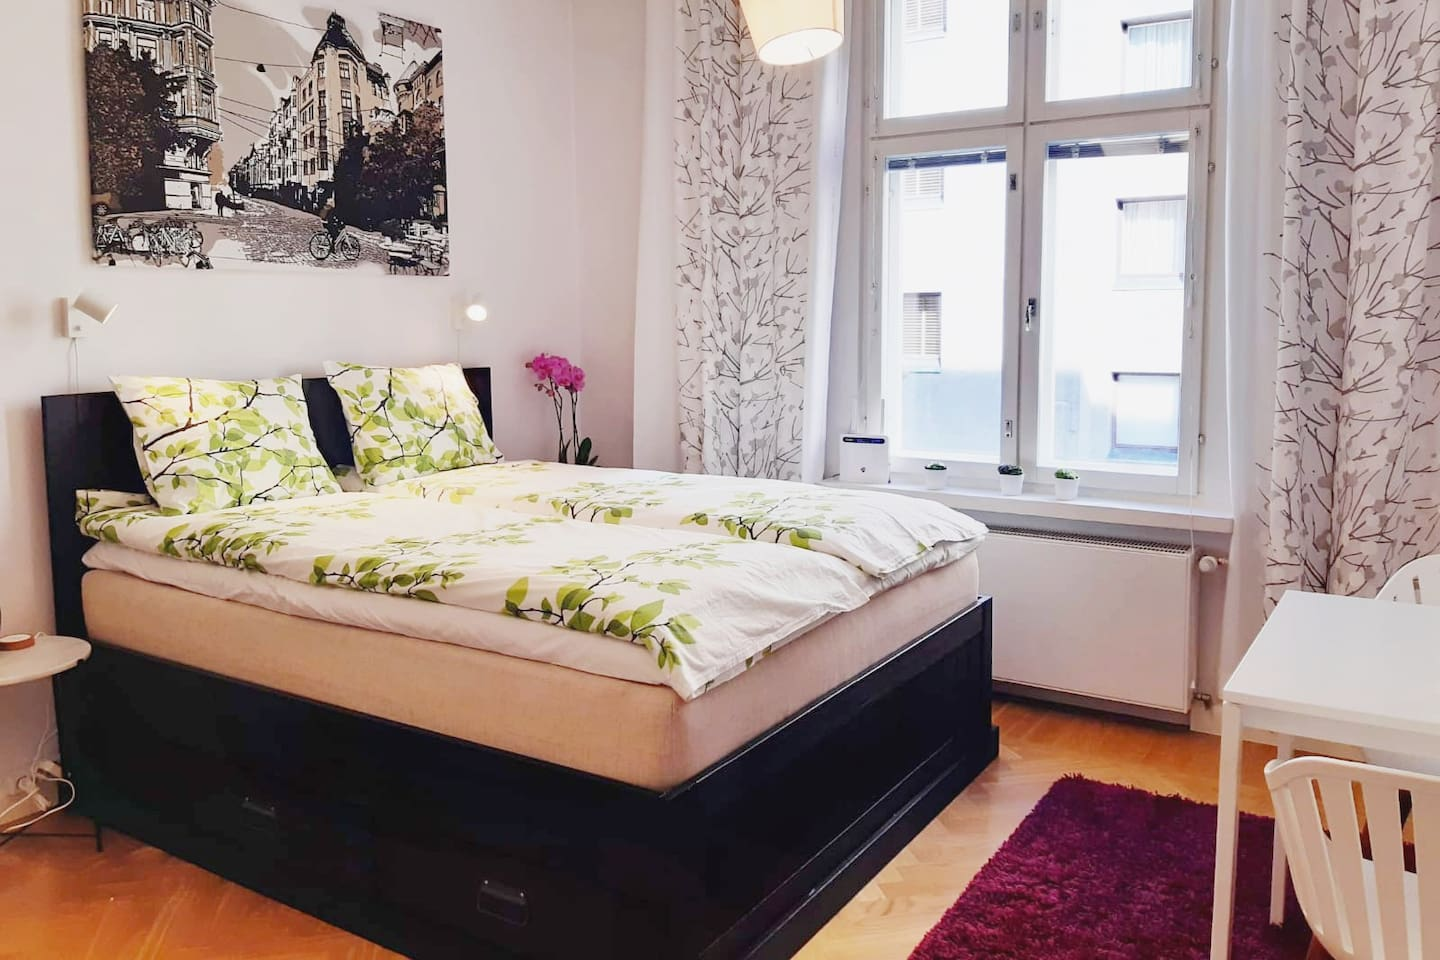 27 m2 studio apartment with very comfortable 160 x 200 cm bed. New windows are soundproofed and heat insulated. In the middle of city centre.